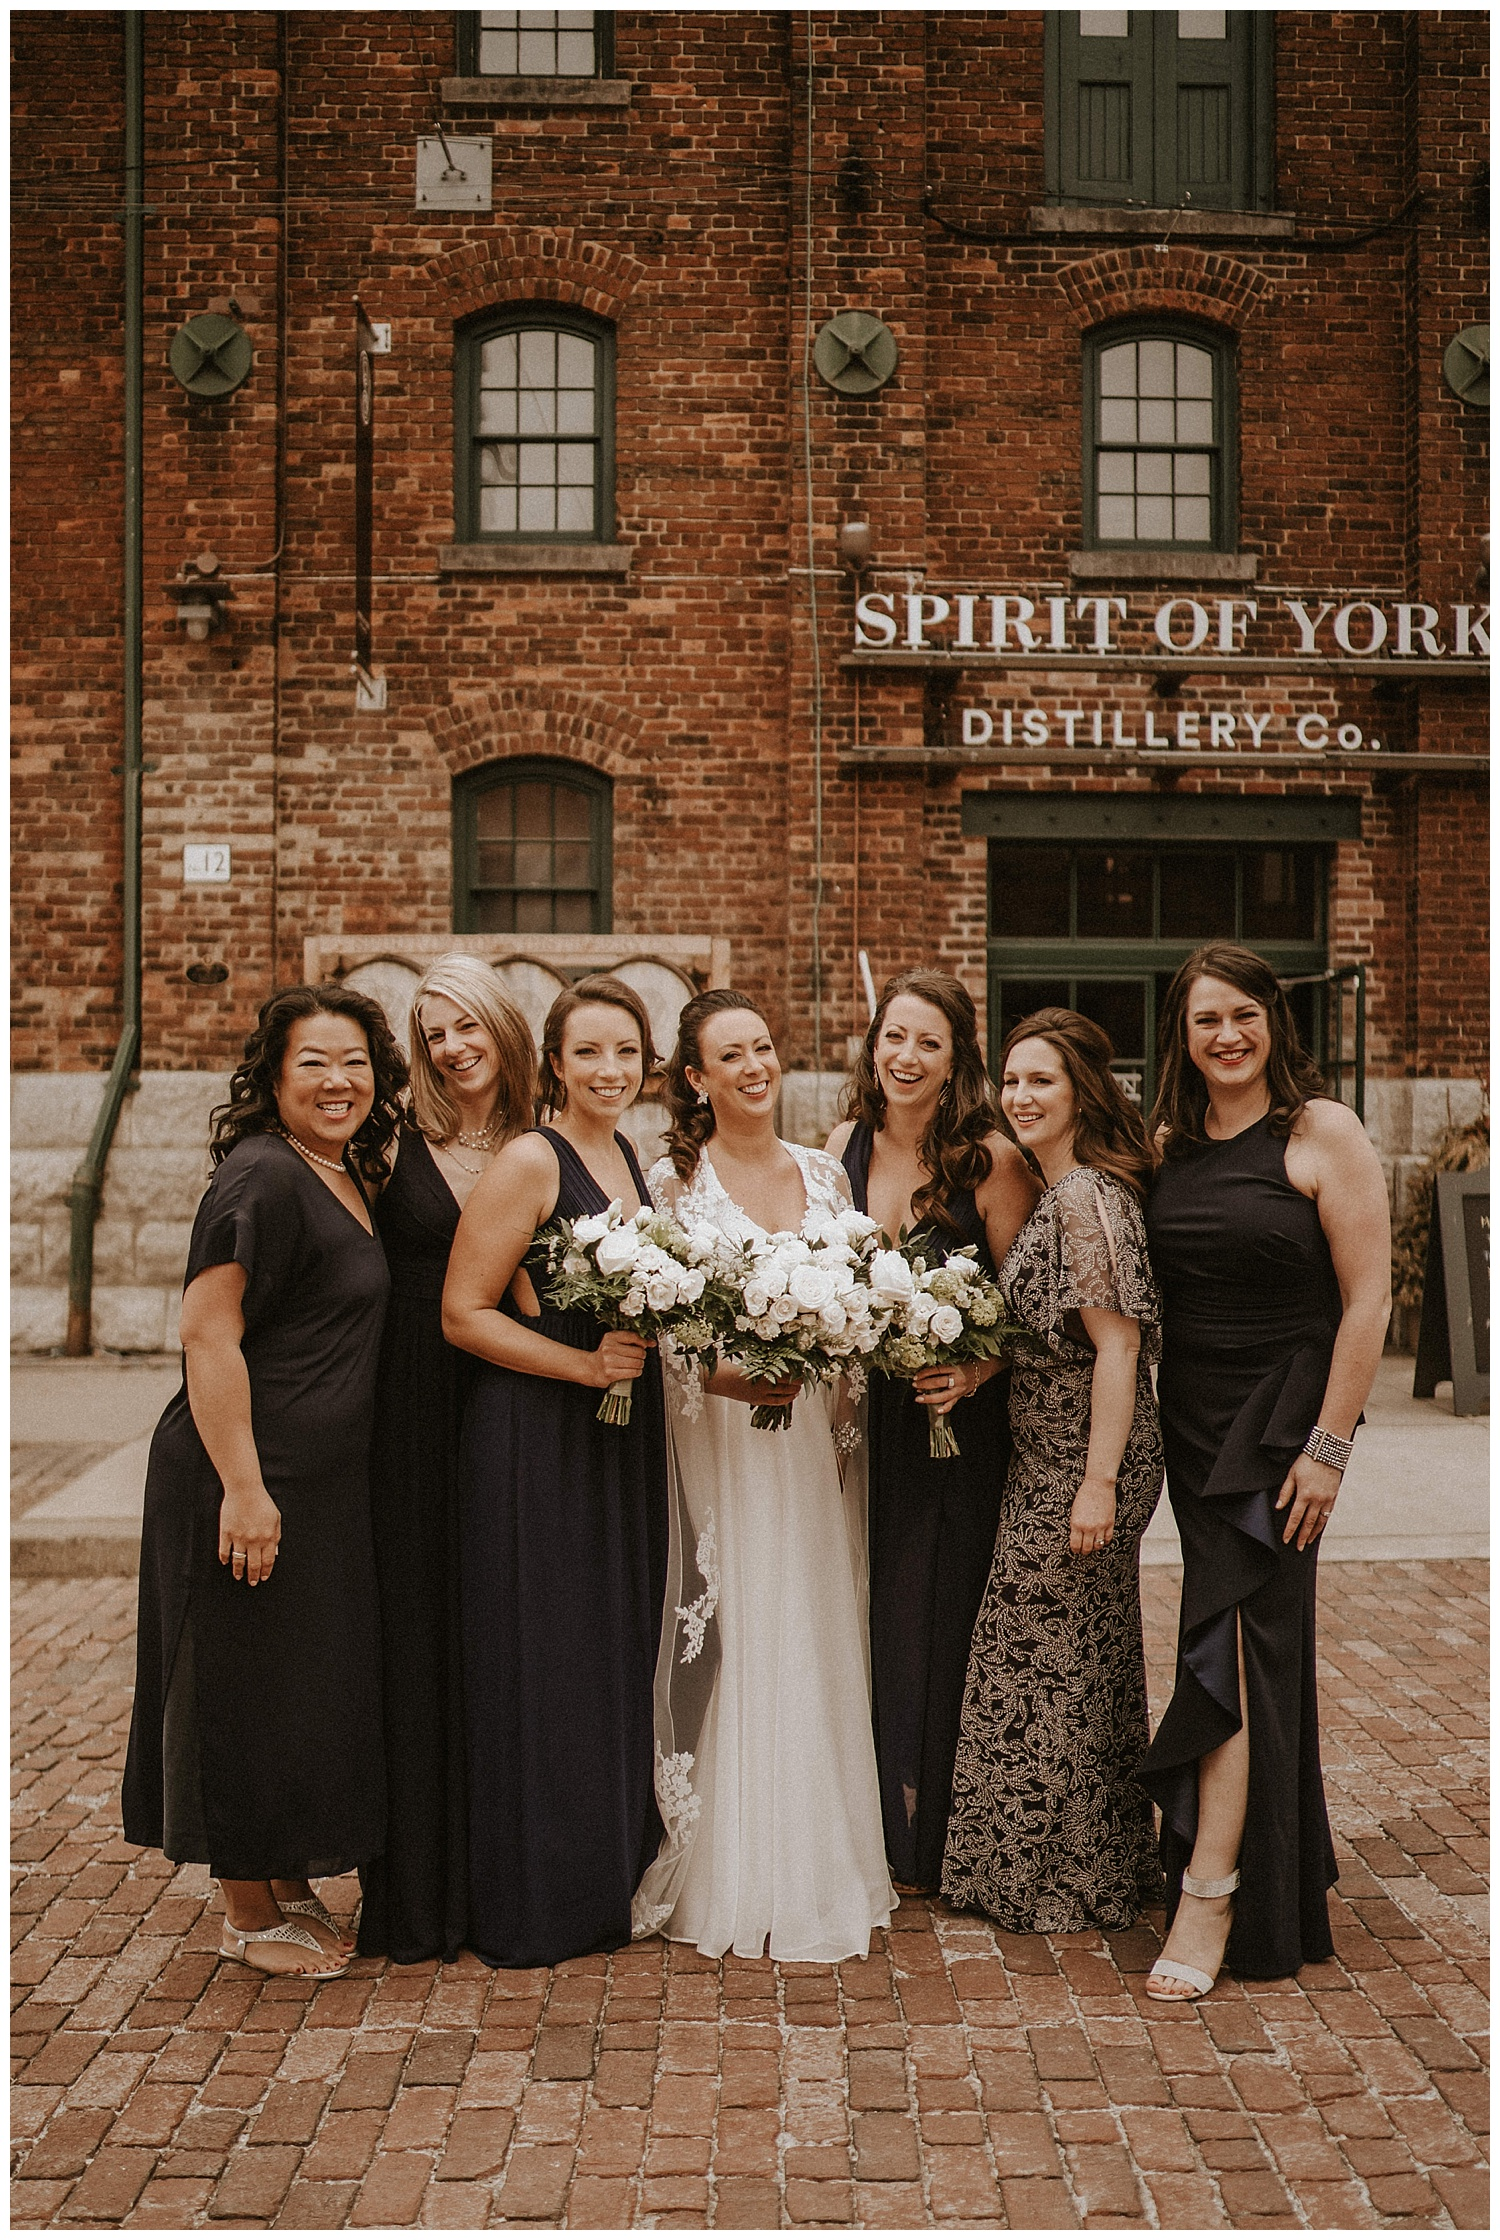 Katie Marie Photography | Archeo Wedding Arta Gallery Wedding | Distillery District Wedding | Toronto Wedding Photographer | Hamilton Toronto Ontario Wedding Photographer |_0061.jpg